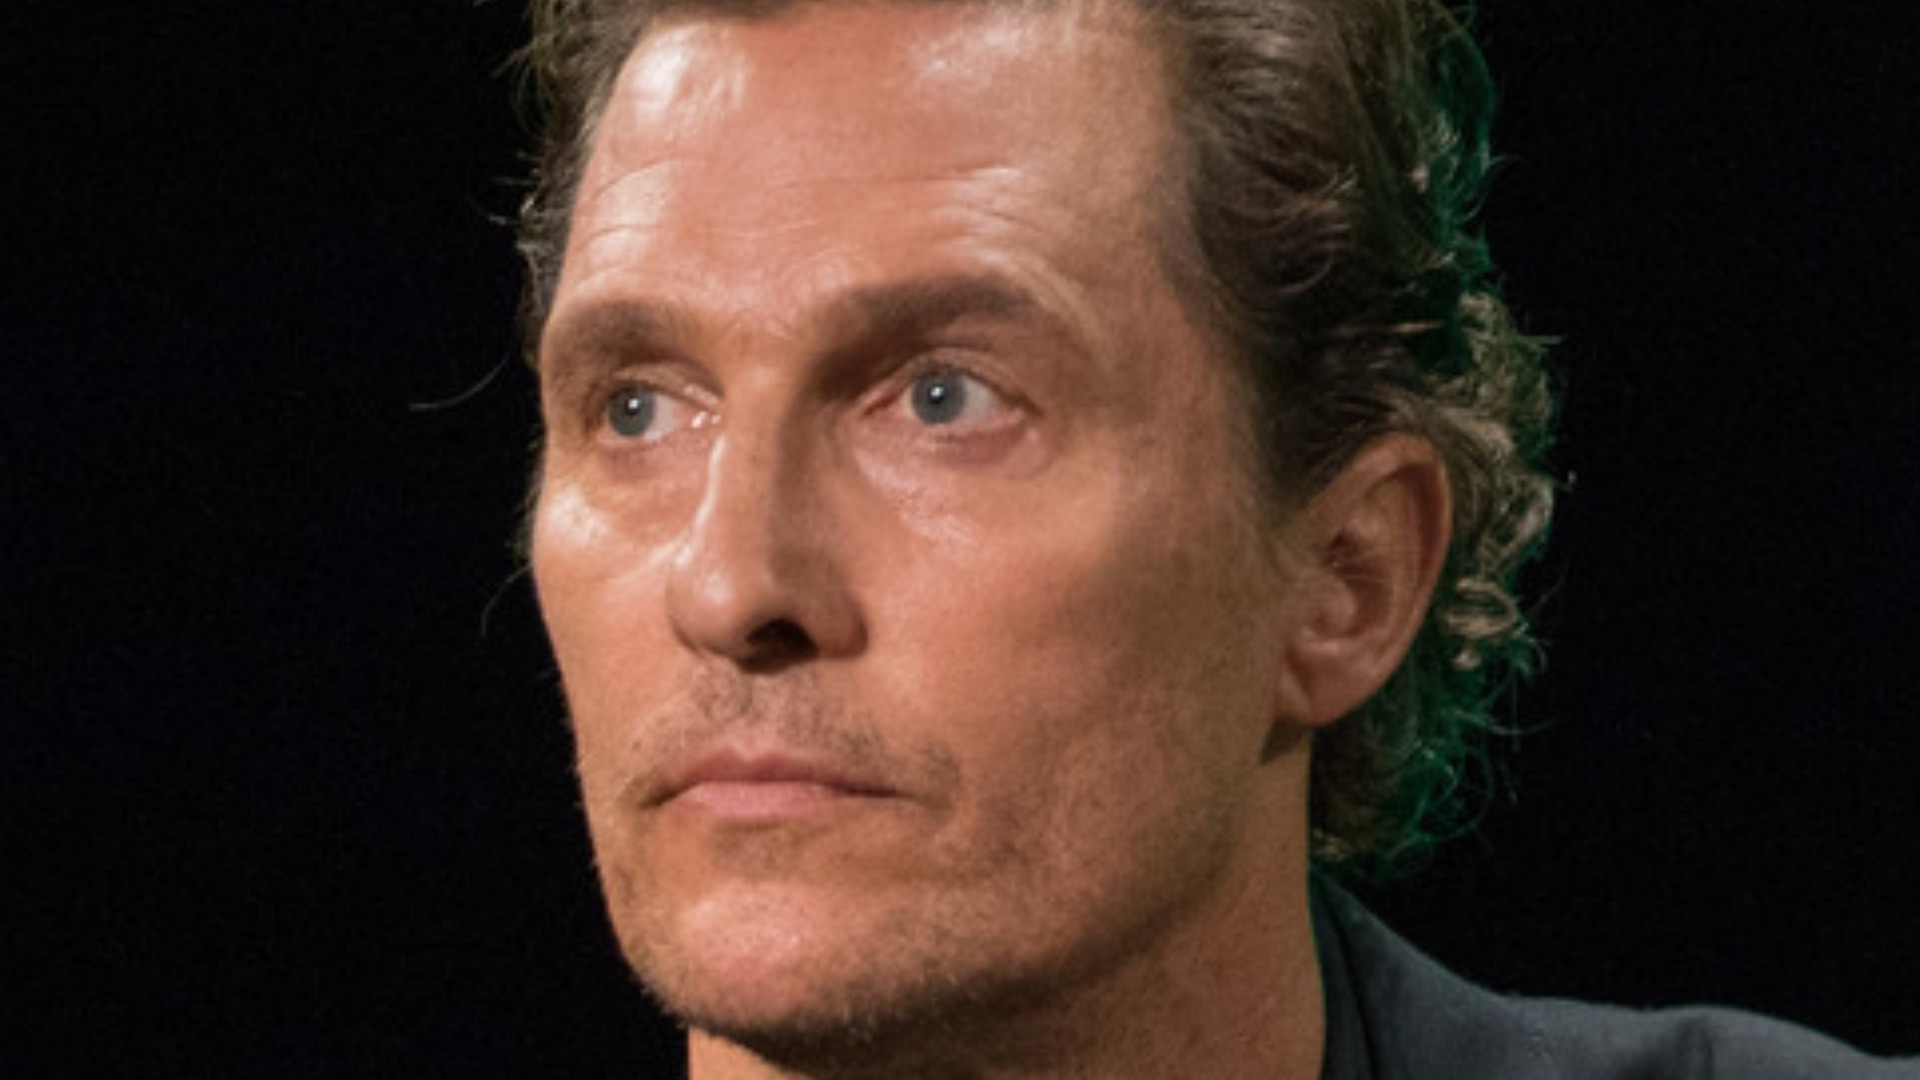 The Tragedy Of Matthew McConaughey Just Gets Sadder And Sadder